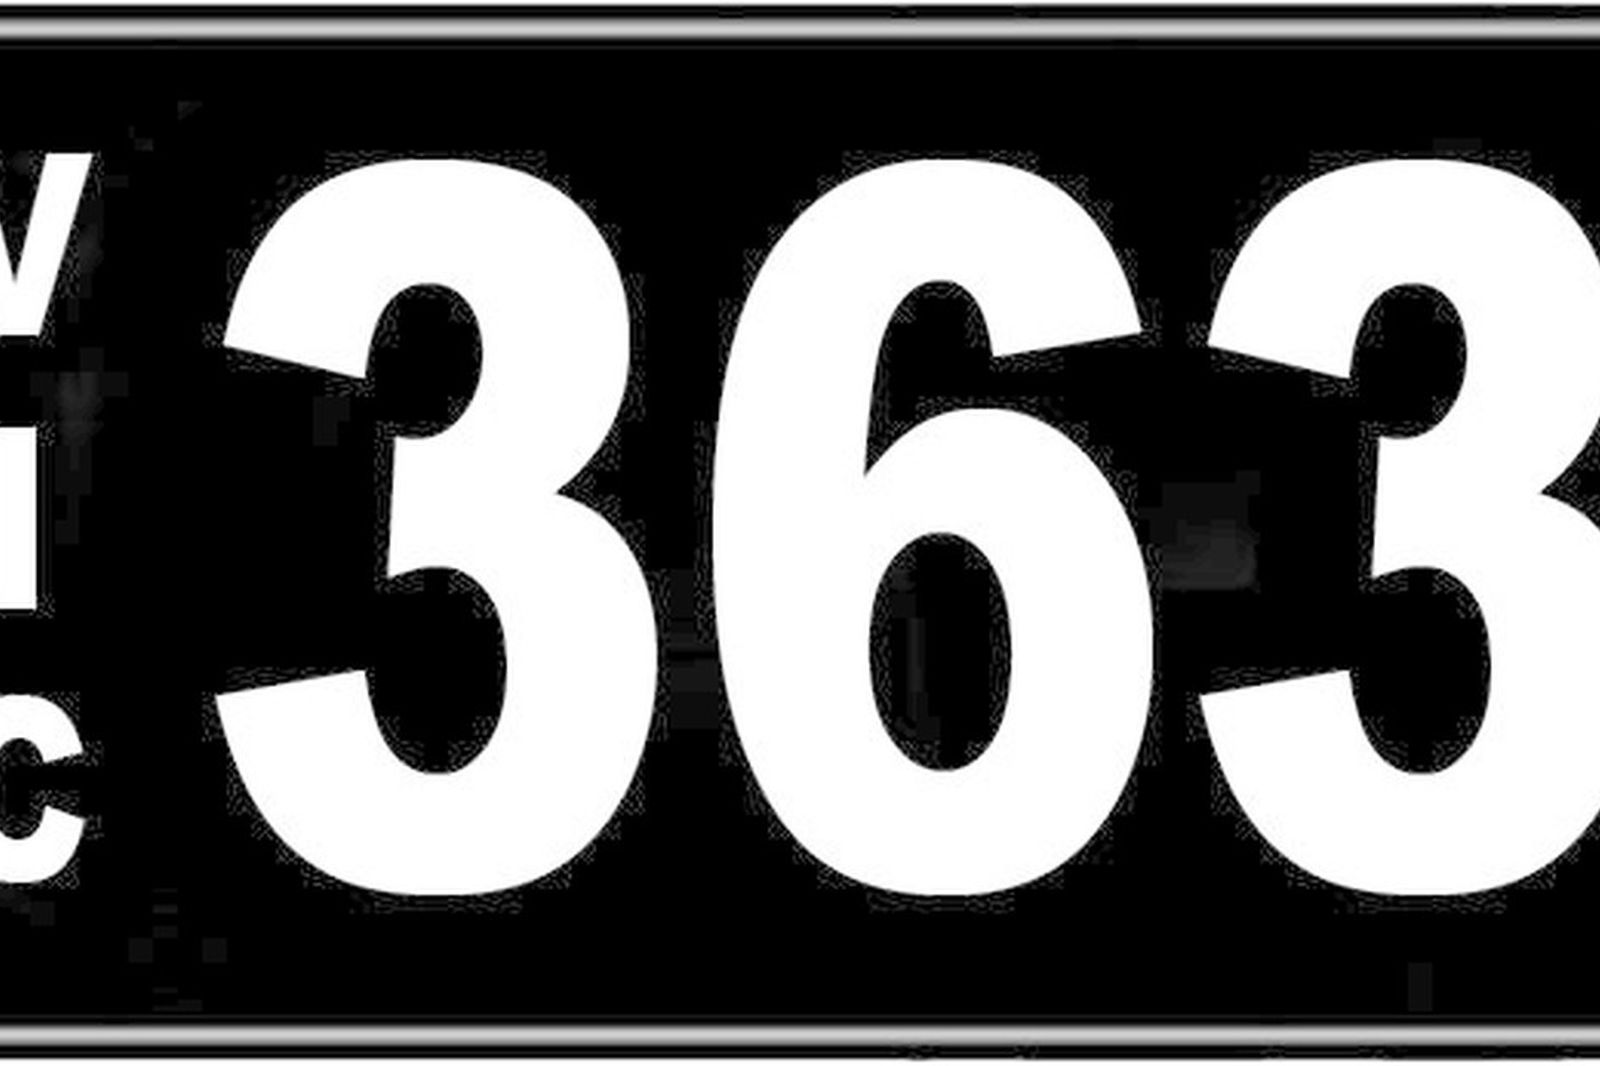 Number Plates - Victorian Numerical Number Plates - '363'